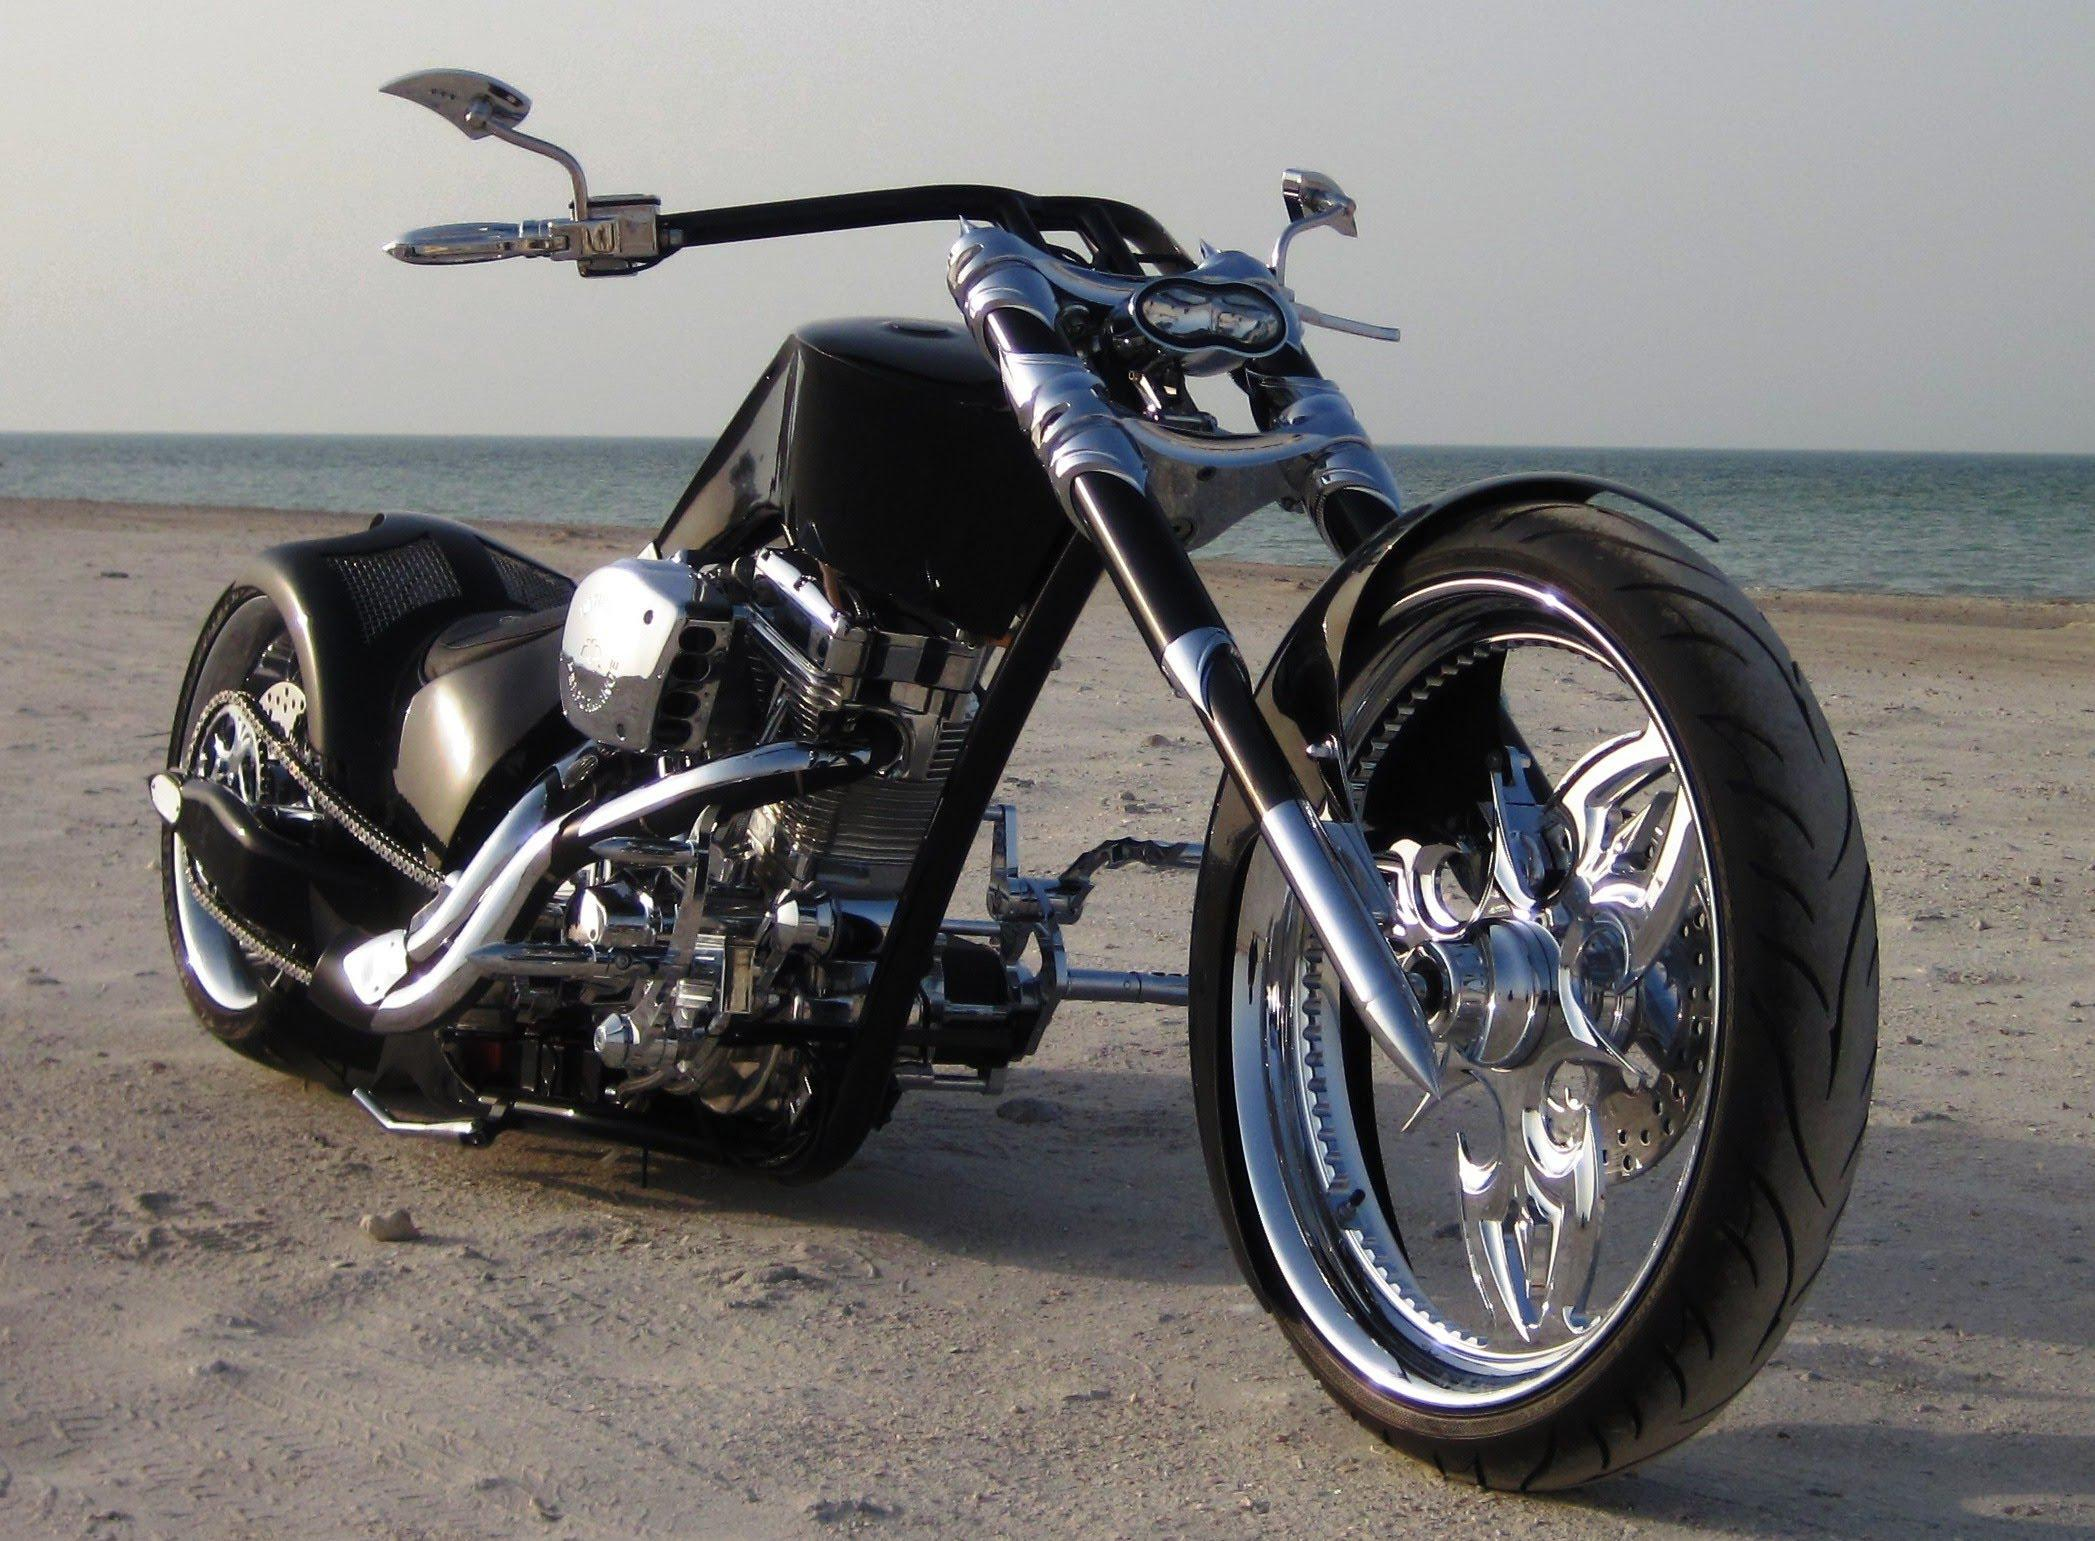 CUSTOM CHOPPER motorbike tuning bike hot rod rods    r